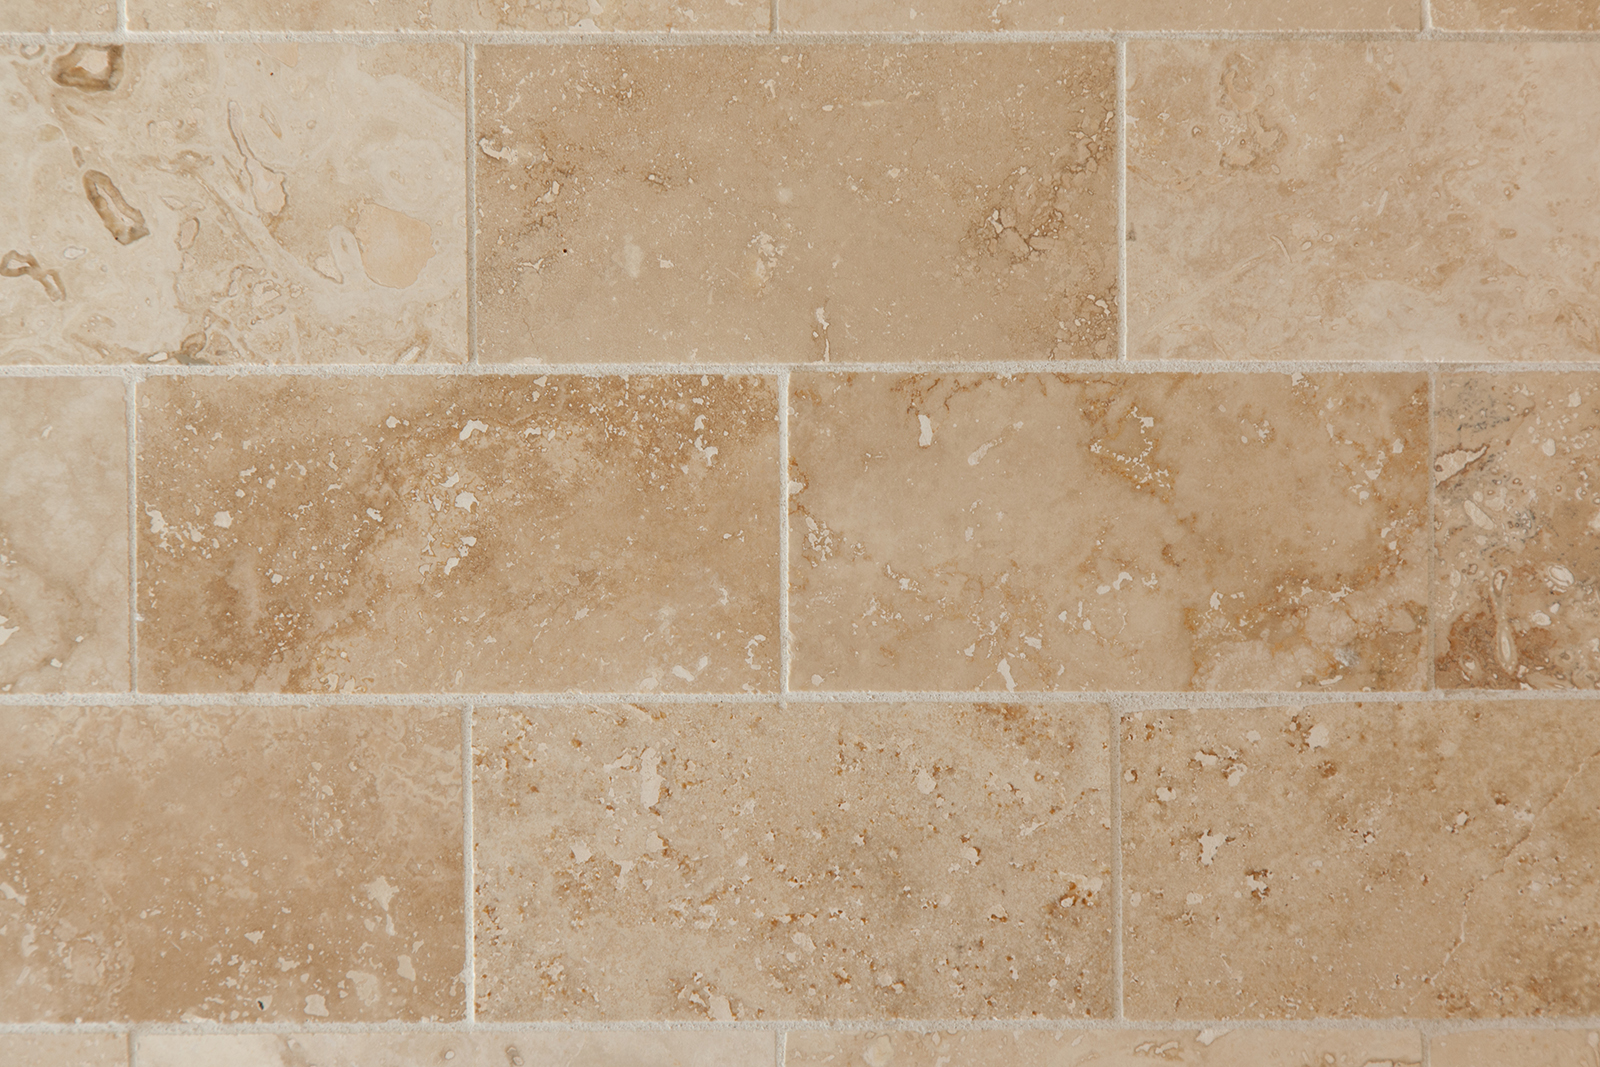 Grouting natural stone tile tile design ideas Natural stone bathroom floor